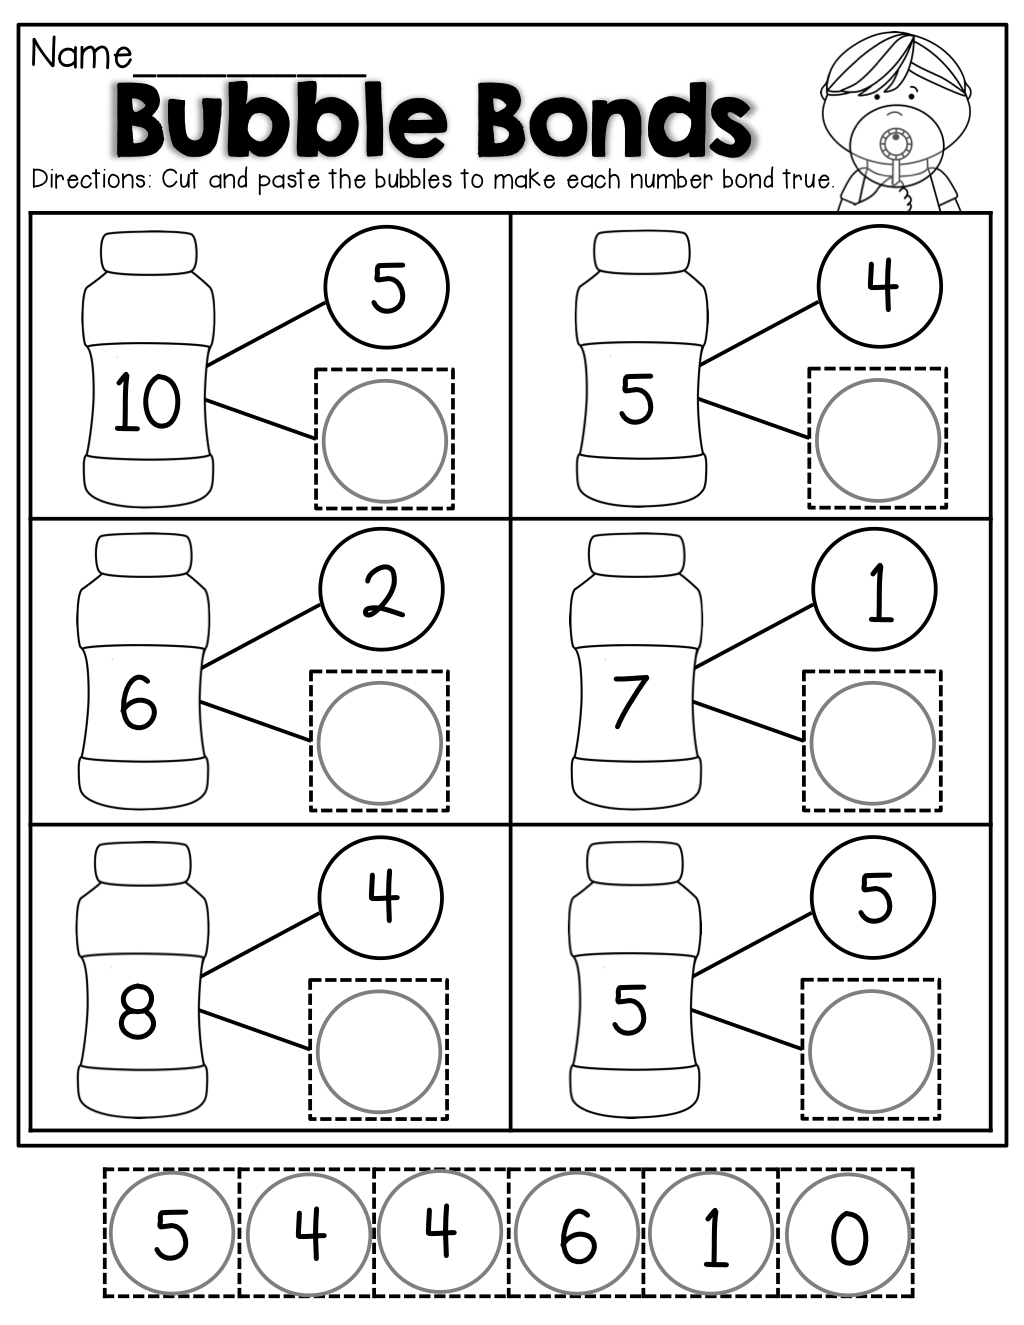 Free Printable Number Bonds Worksheets For Kindergarten